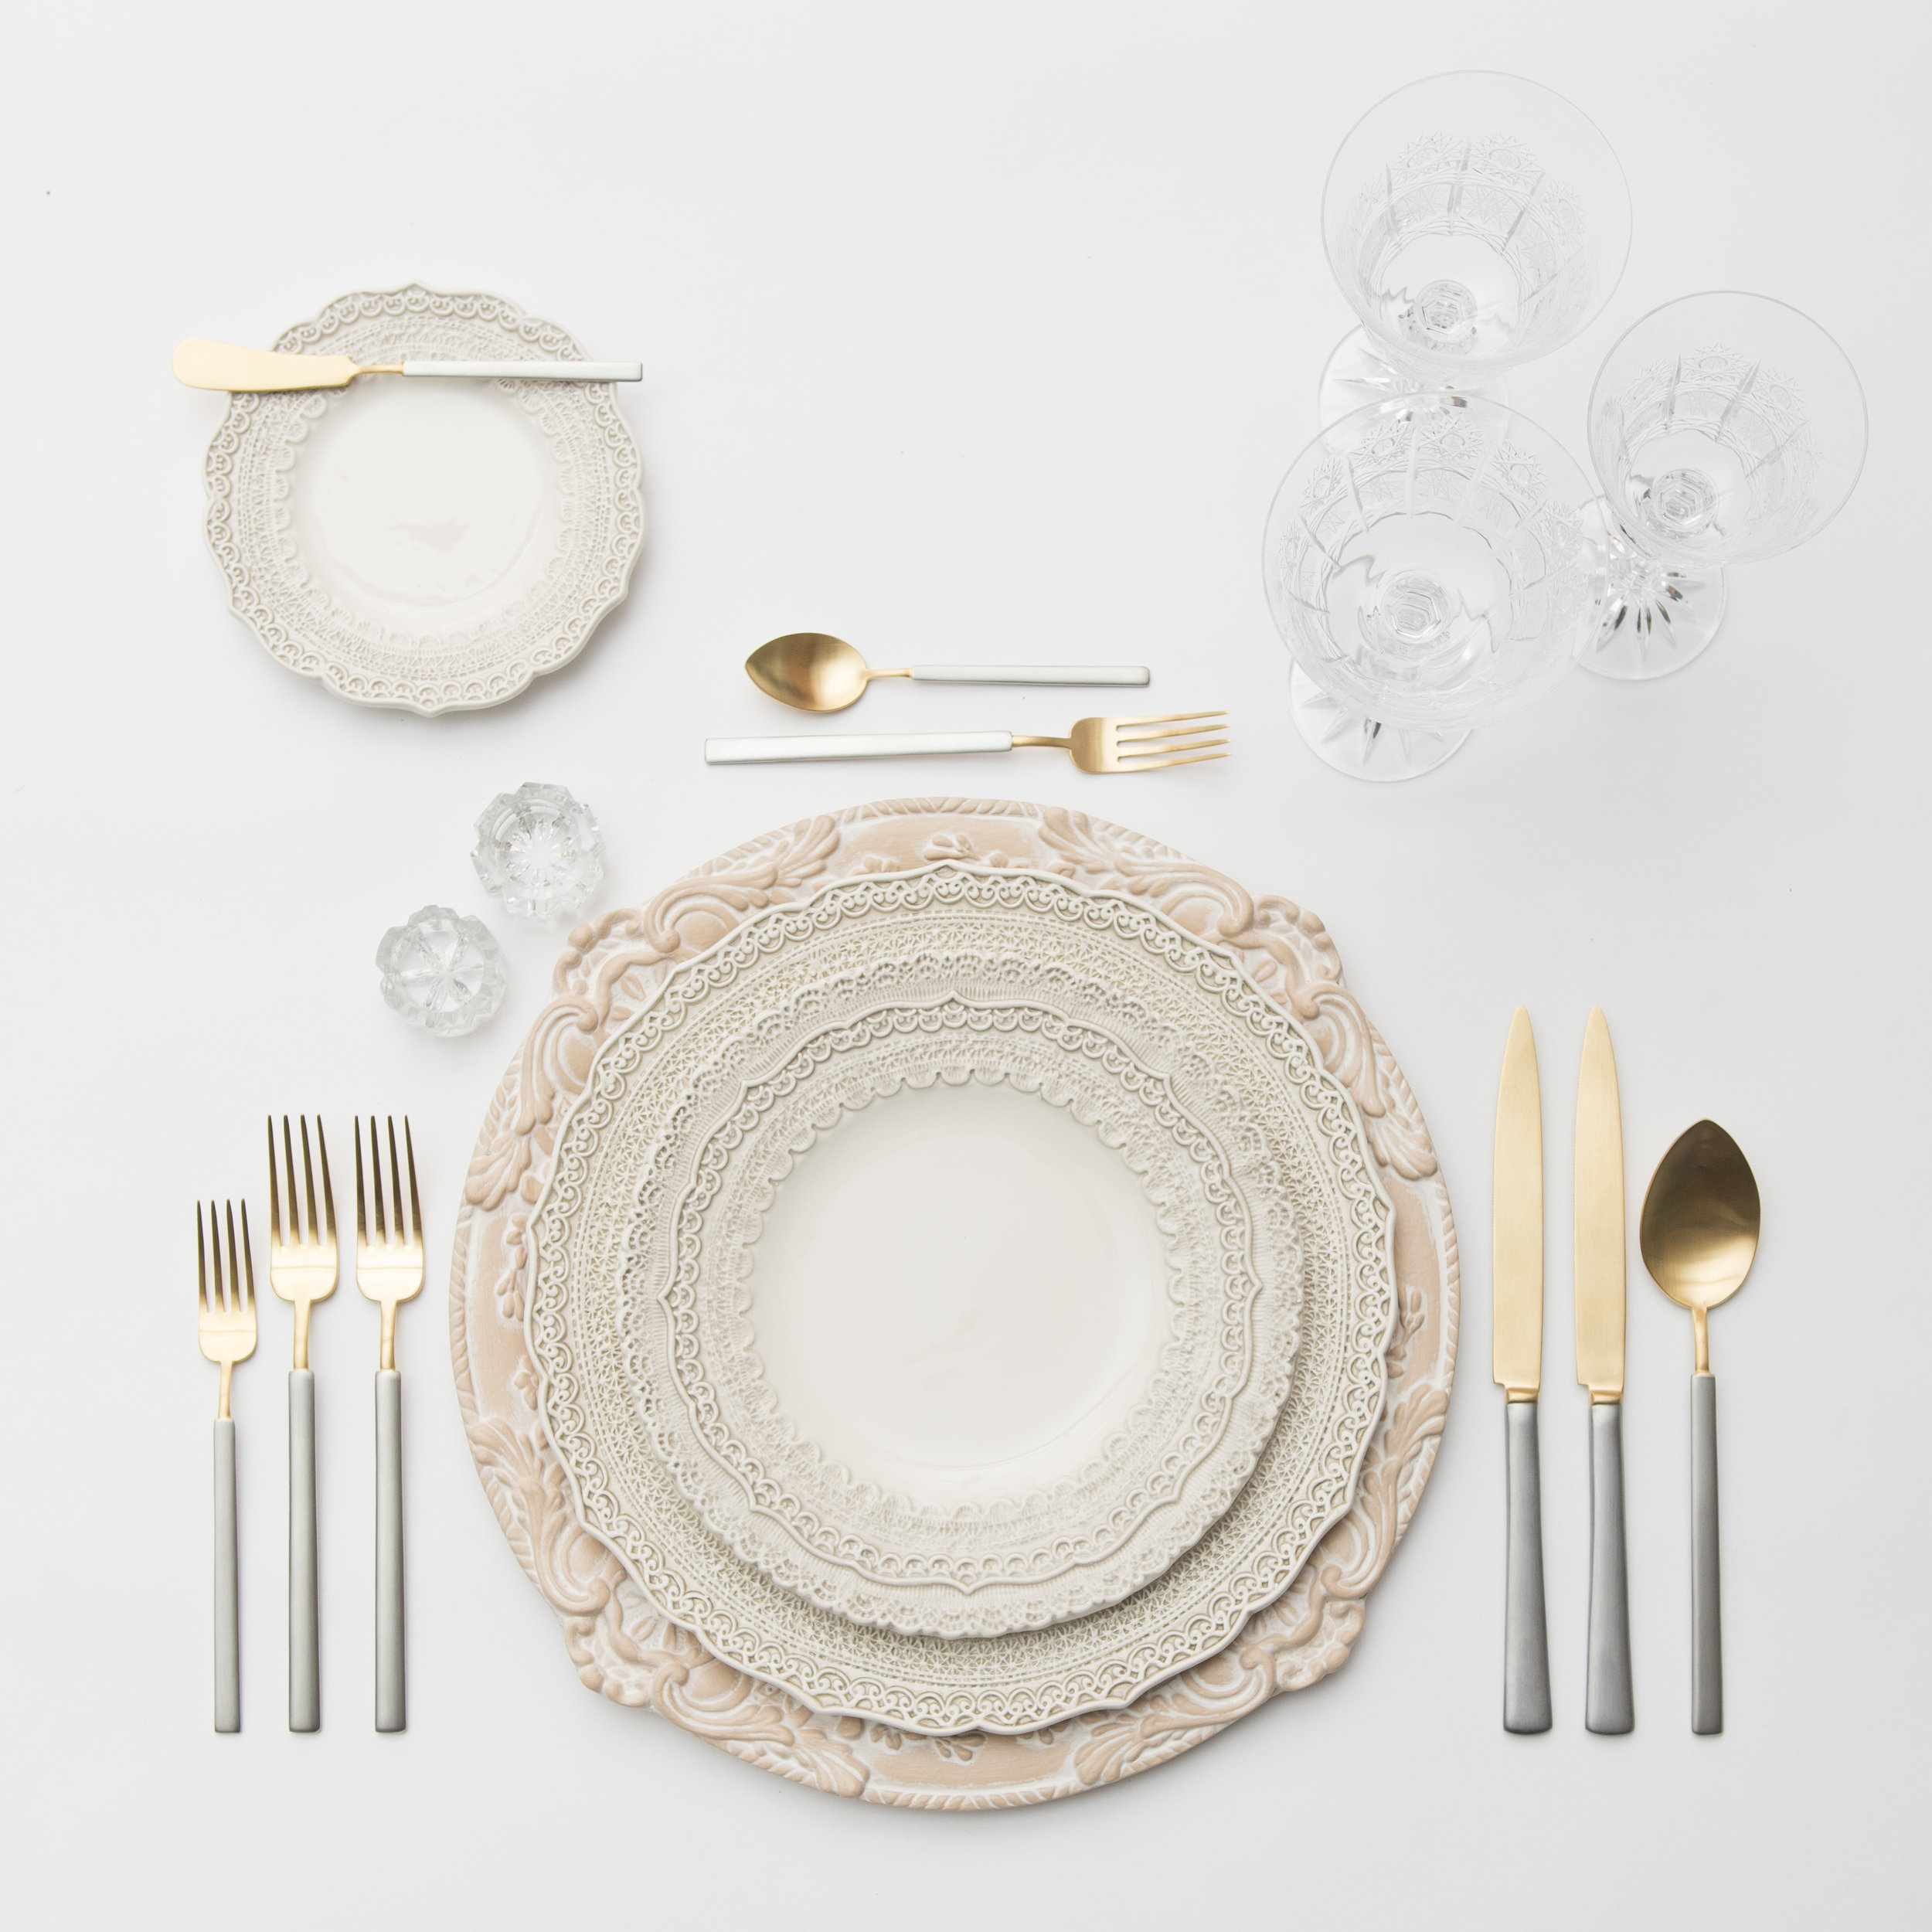 RENT: Verona Chargers in Terracotta + Lace Dinnerware in White + Axel Flatware in Matte 24k Gold/Silver + Czech Crystal Stemware + Antique Crystal Salt Cellars  SHOP:Verona Chargers in Terracotta